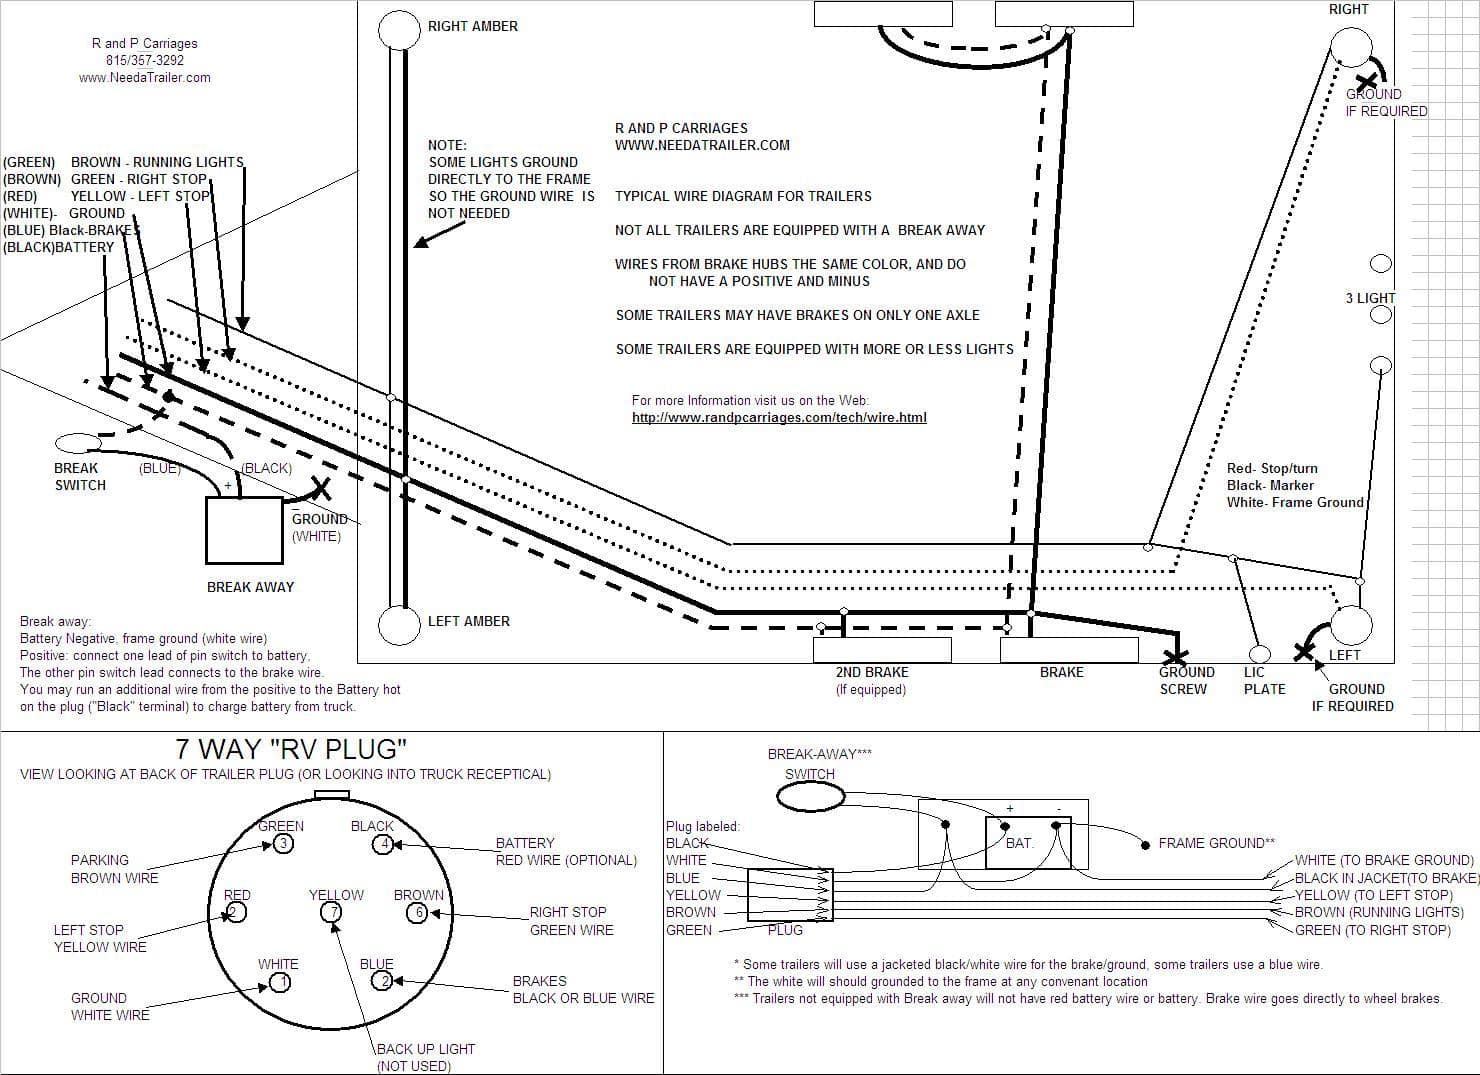 7 Way Plug Information | R And P Carriages | Cargo, Utility, Dump - Trailer Hook Up Wiring Diagram